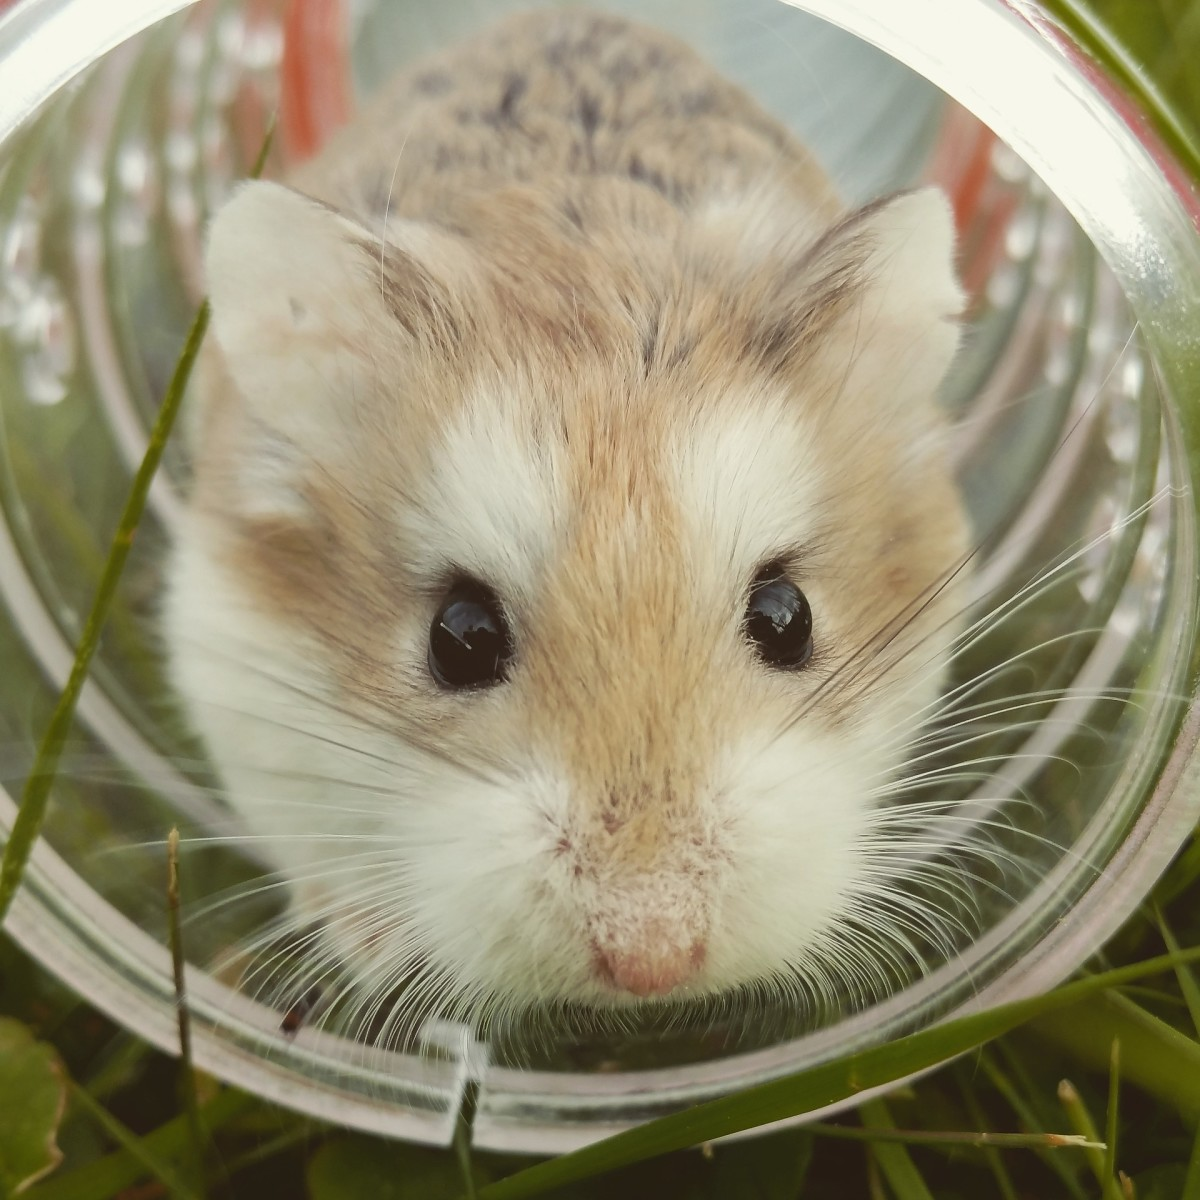 How Do Hamsters Communicate With Each Other and With Humans?